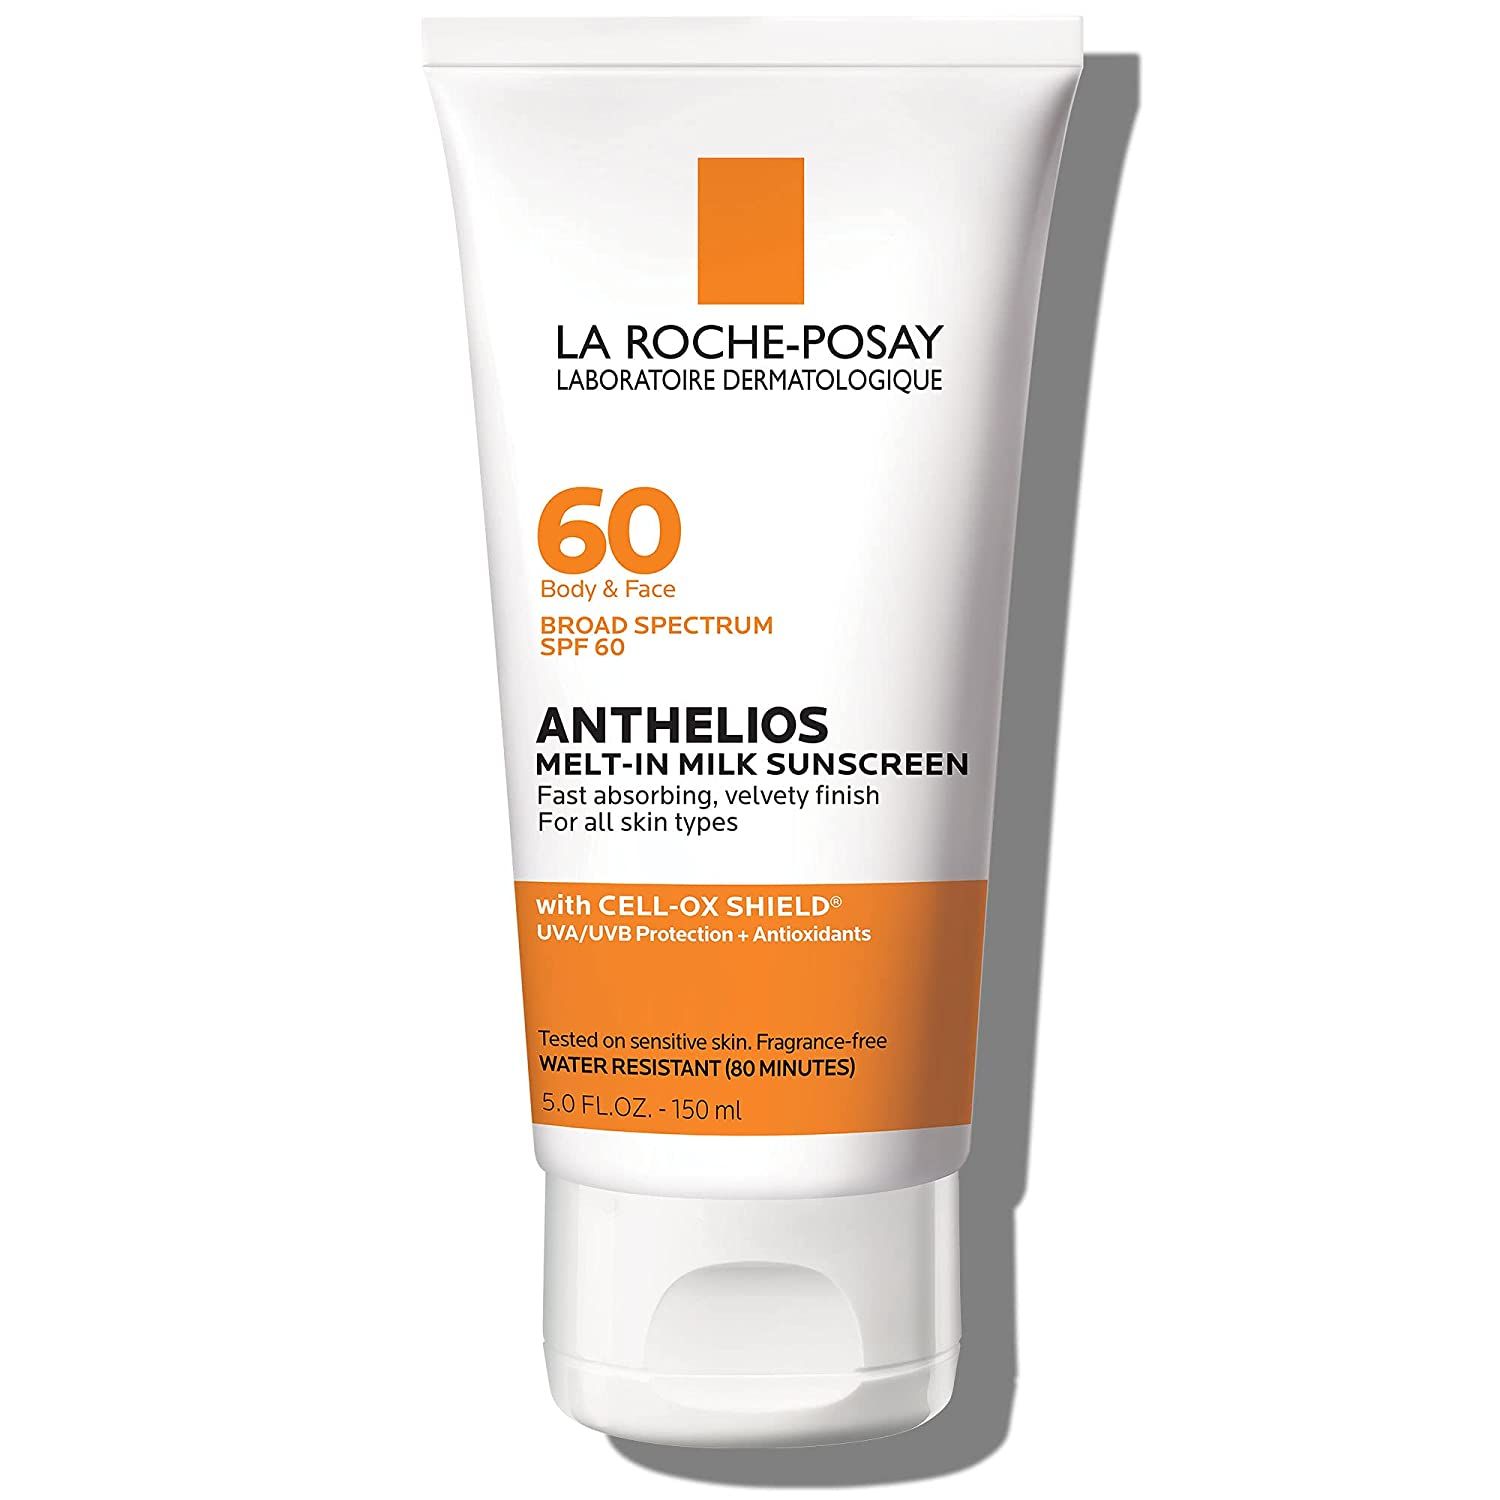 La Roche-Posay Anthelios Melt-In Sunscreenn, best non-greasy sunscreens